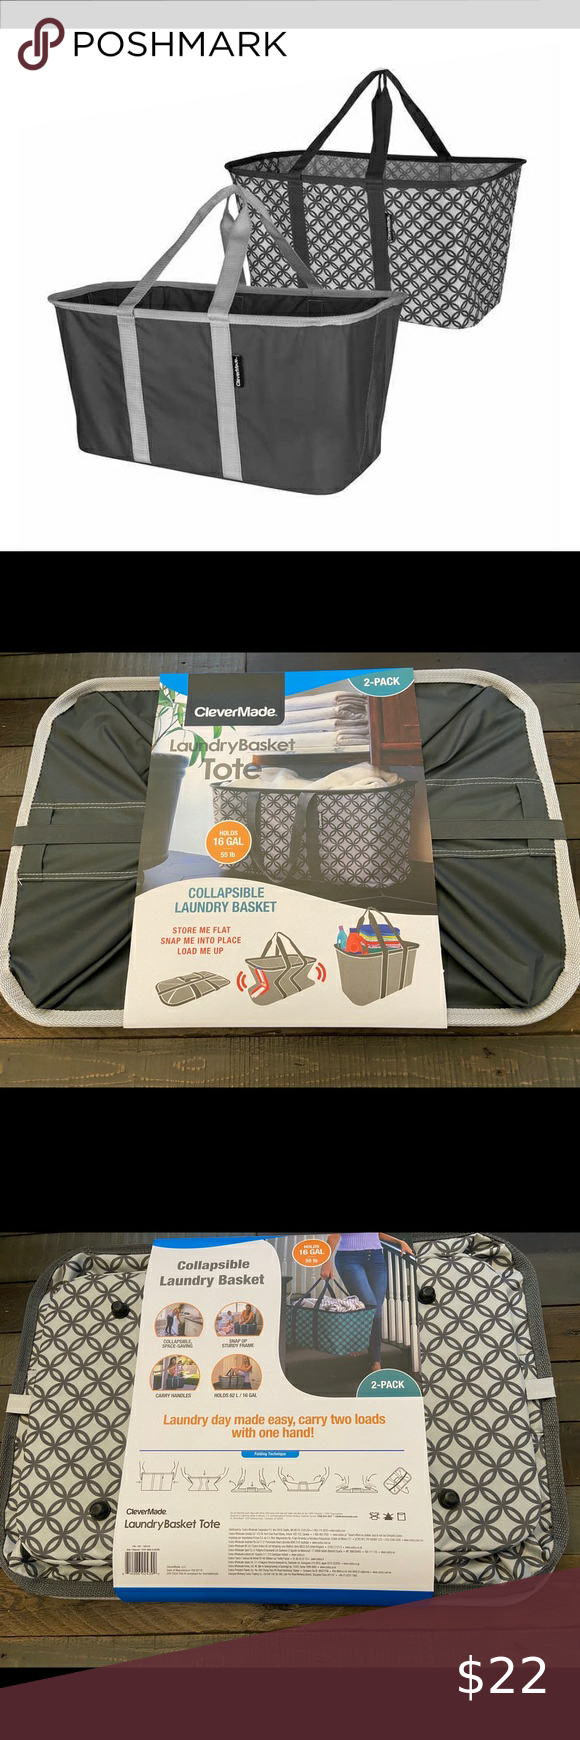 New Clevermade Collapsible Laundry Tote 2pk Laundry Day Made Easy